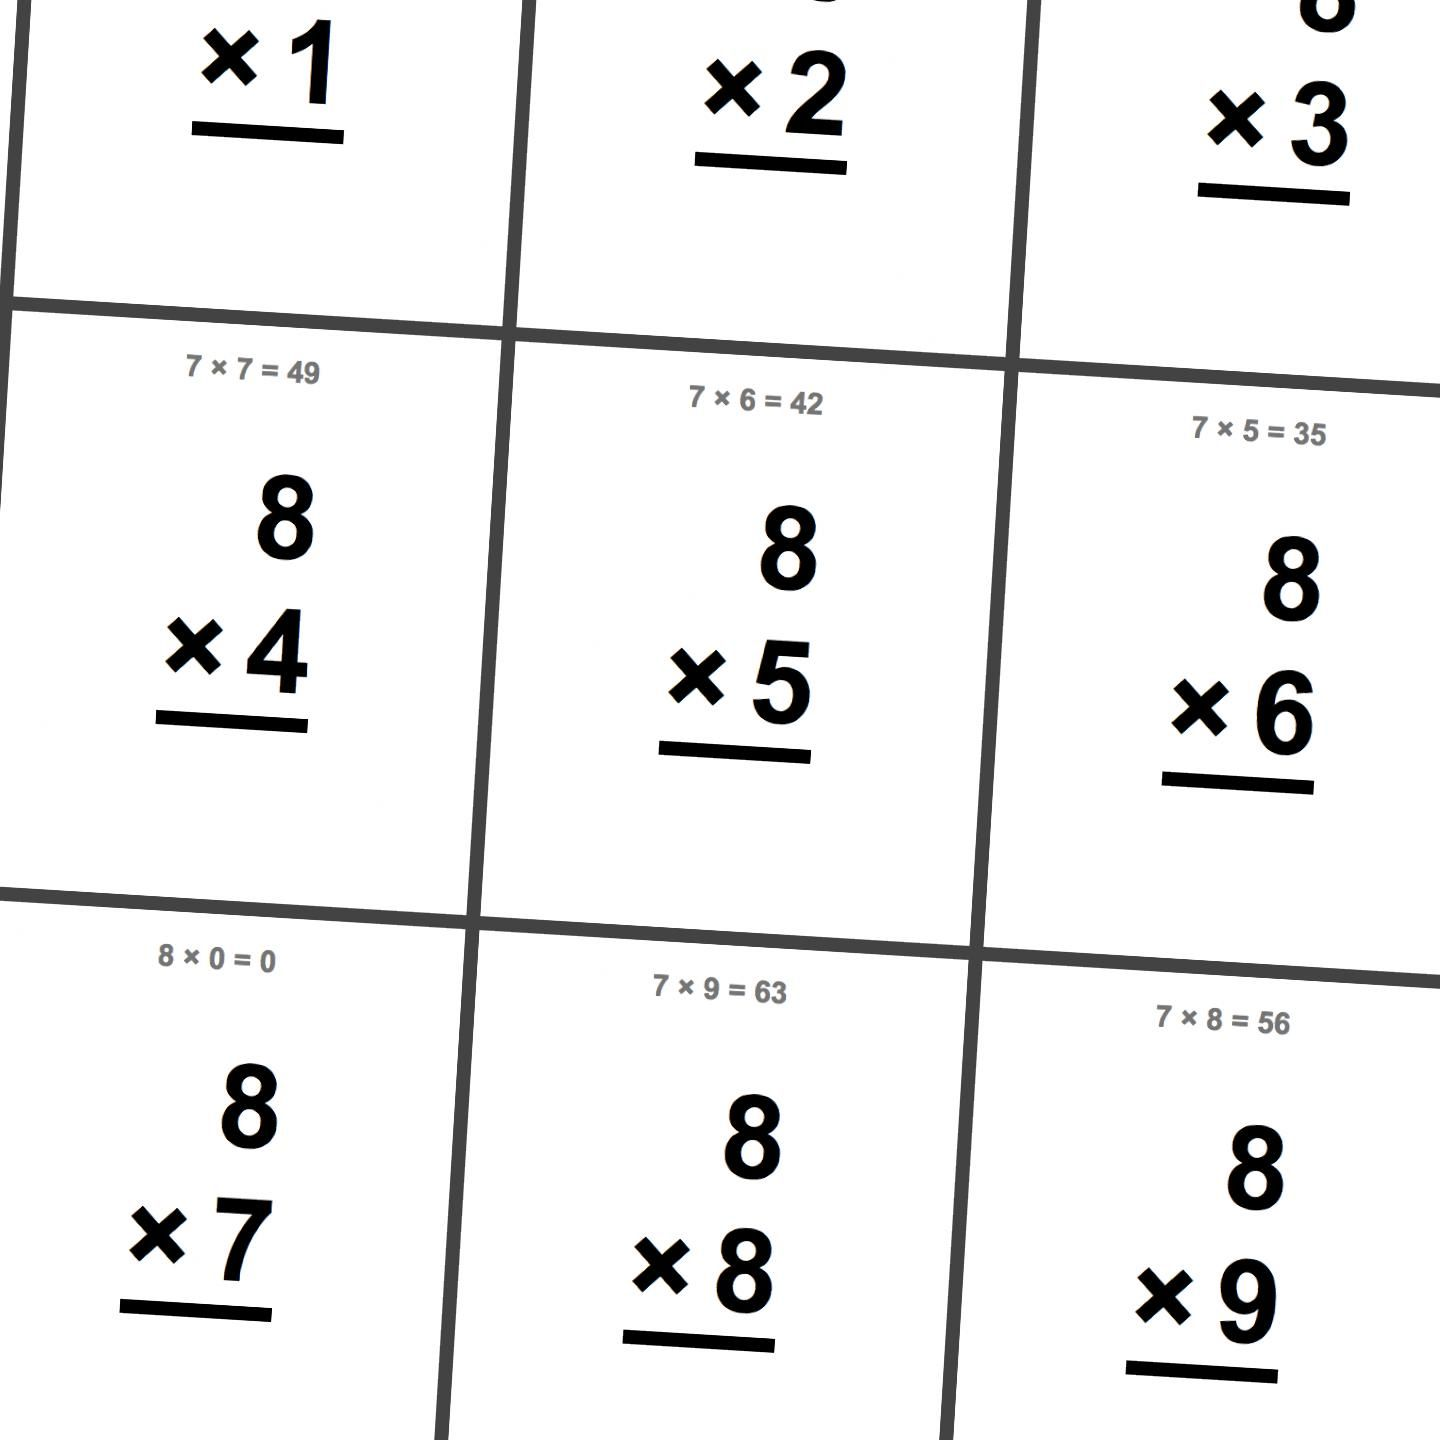 Worksheet Free Printable Multiplication Flash Cards free printable flash cards for multiplication math facts this set includes single digit facts